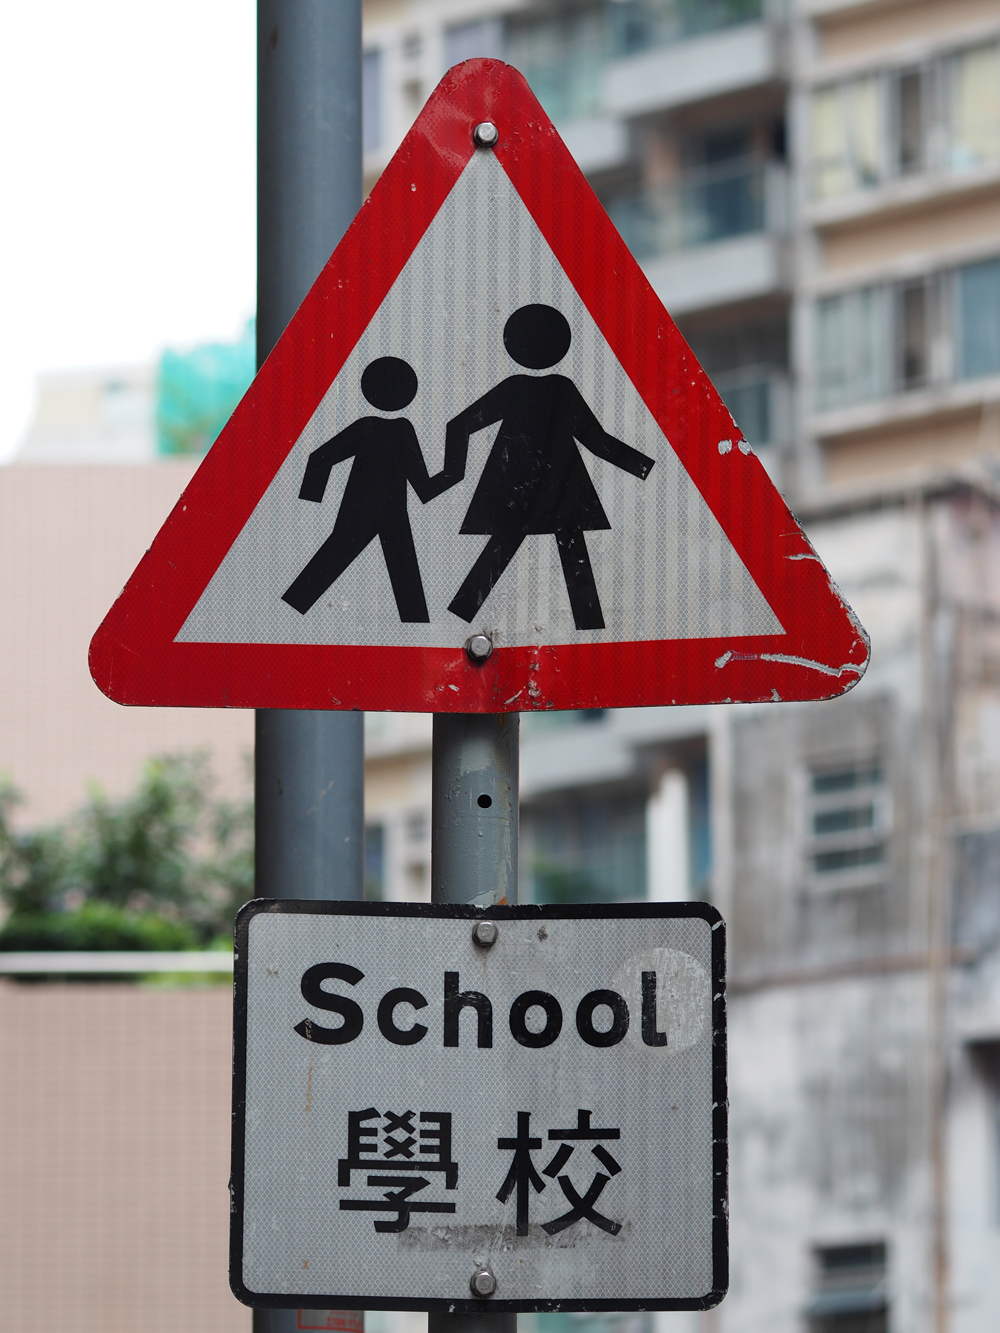 School safety is an increasing area of interest © Alexandre Tziripouloff | Dreamstime.com